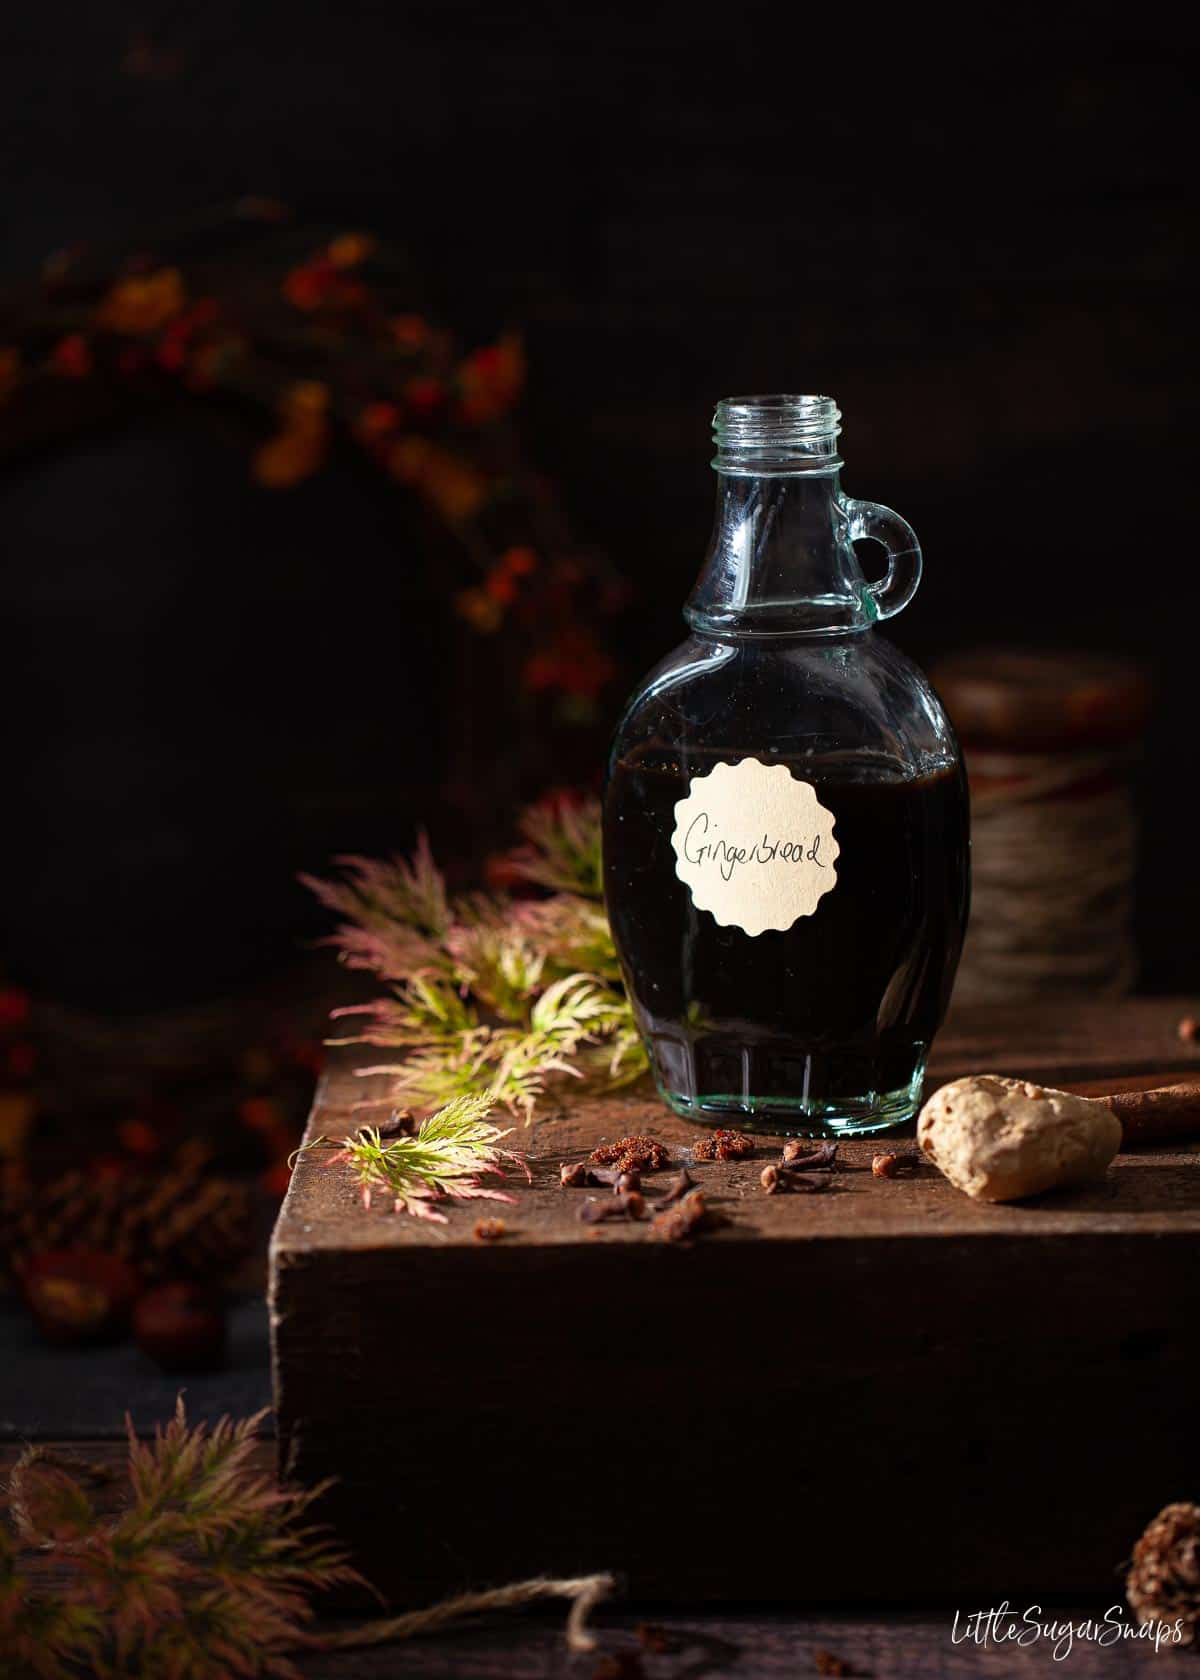 A bottle of homemade gingerbread syrup with autumn foliage in the image.